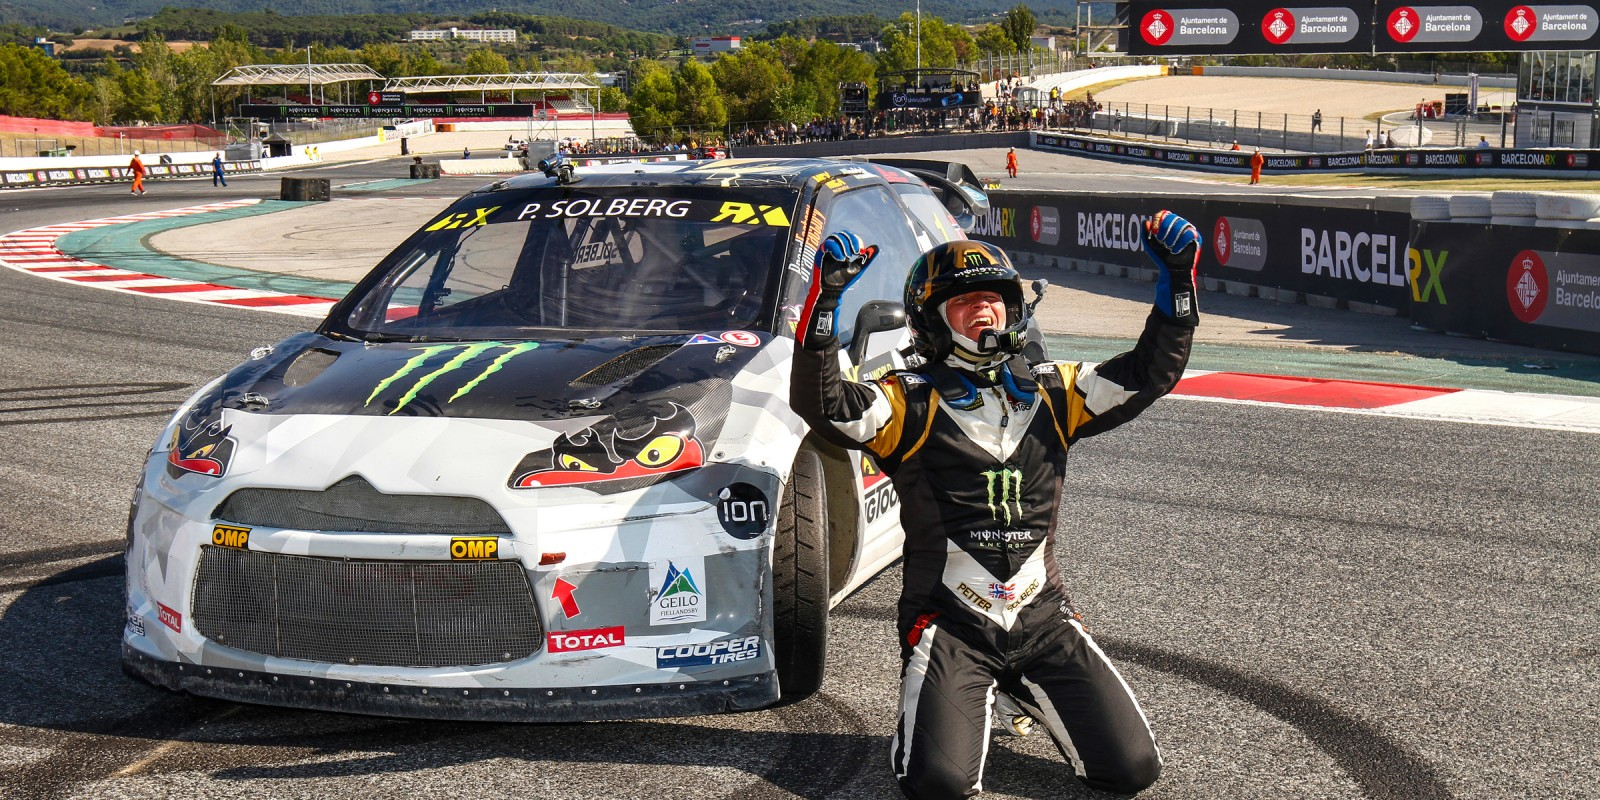 Petter Solberg at round 10 of the 2015 FIA World Rallycross Championship in Barcelona